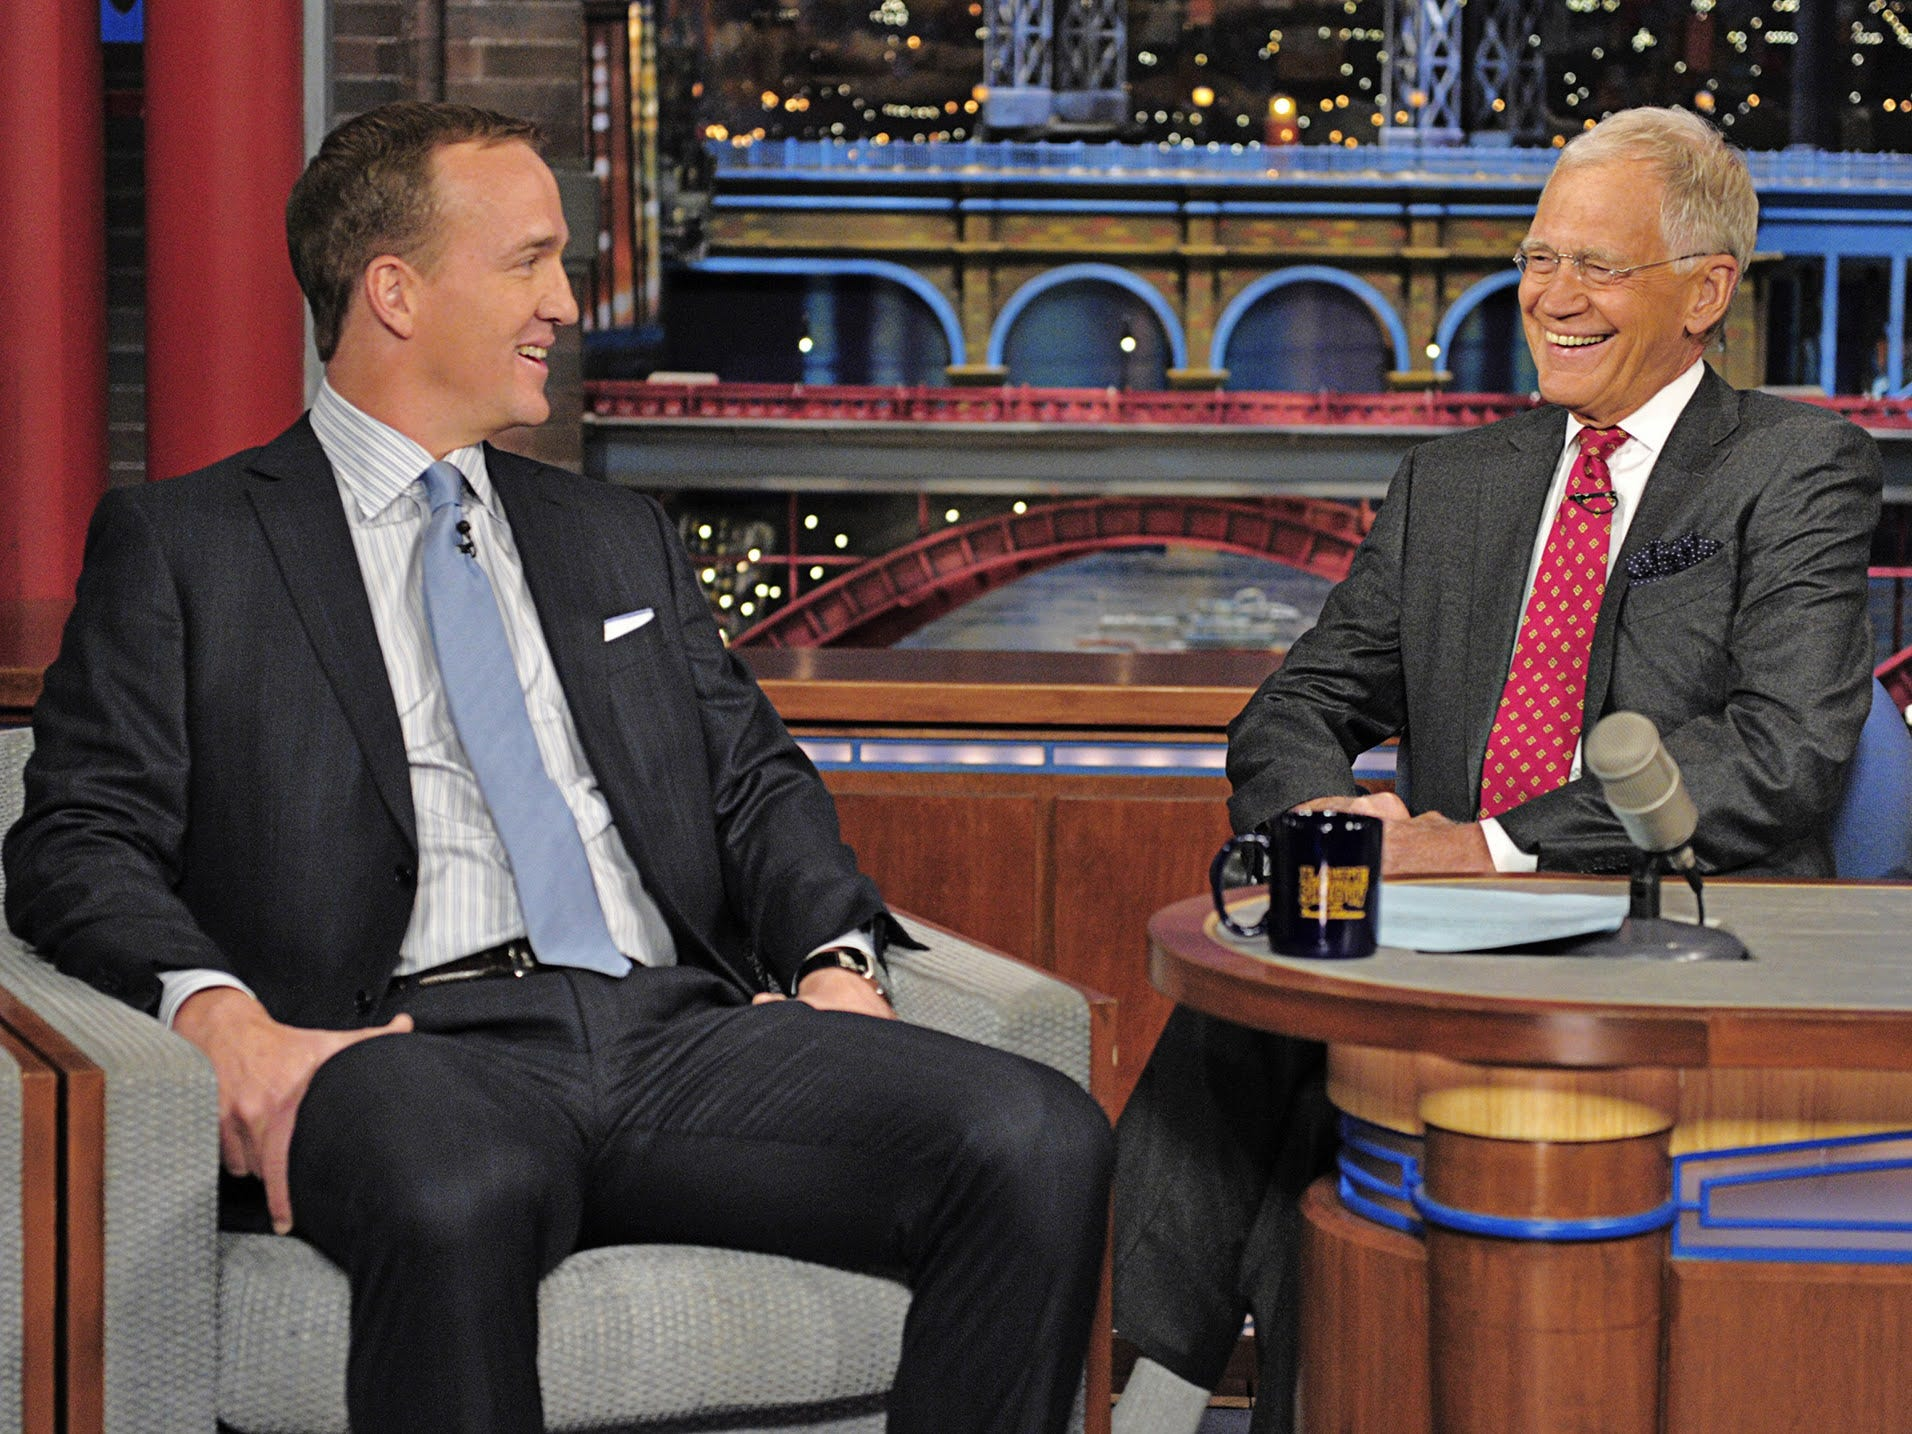 Peyton Manning, David Letterman get together at Ball State for TV project